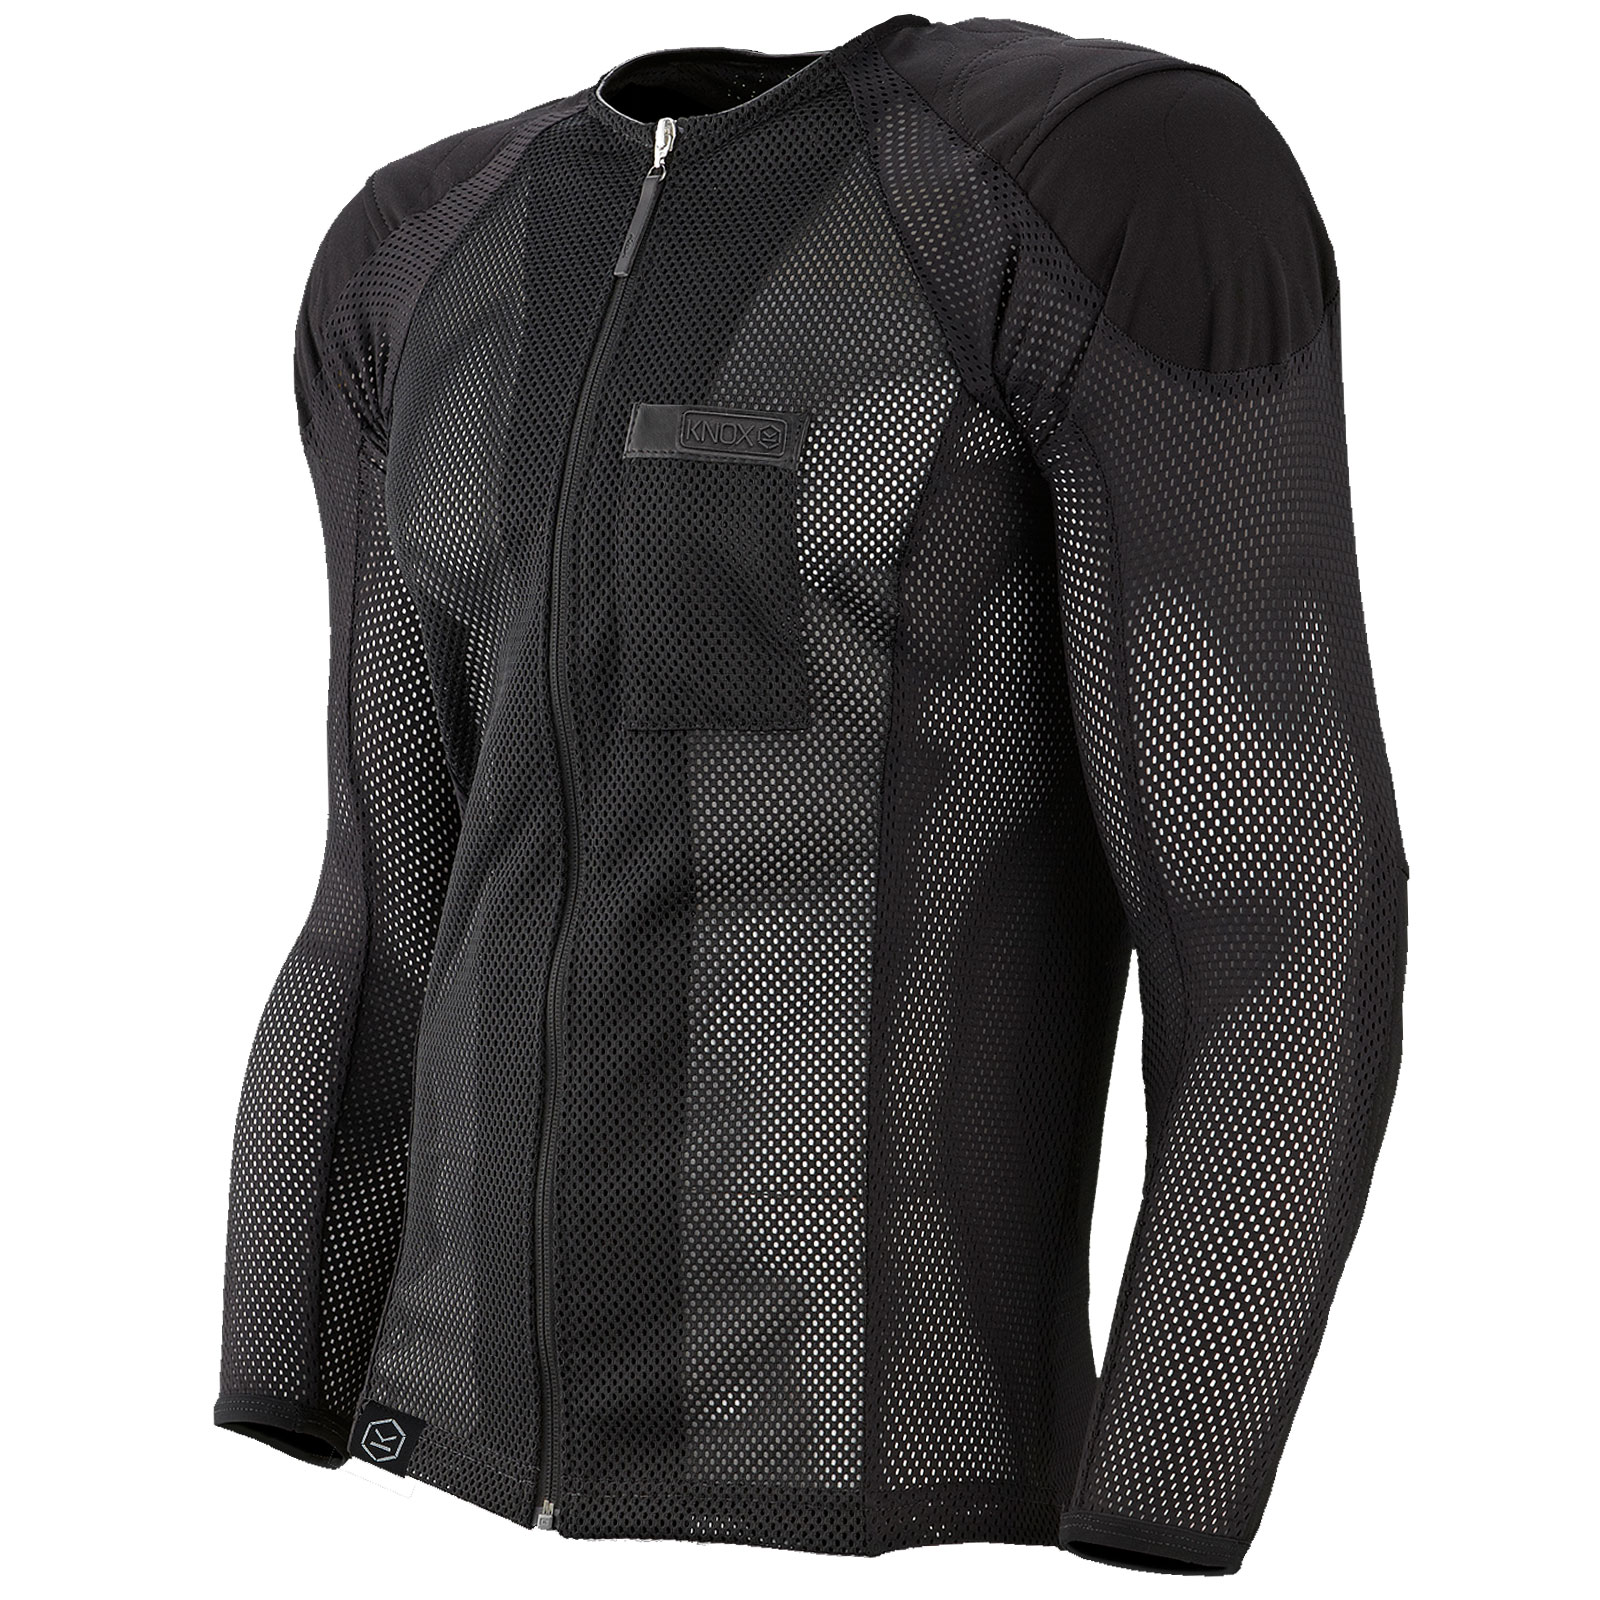 Knox urbane under motorcycle jacket mesh ce body armour for Motorcycle body armor shirt